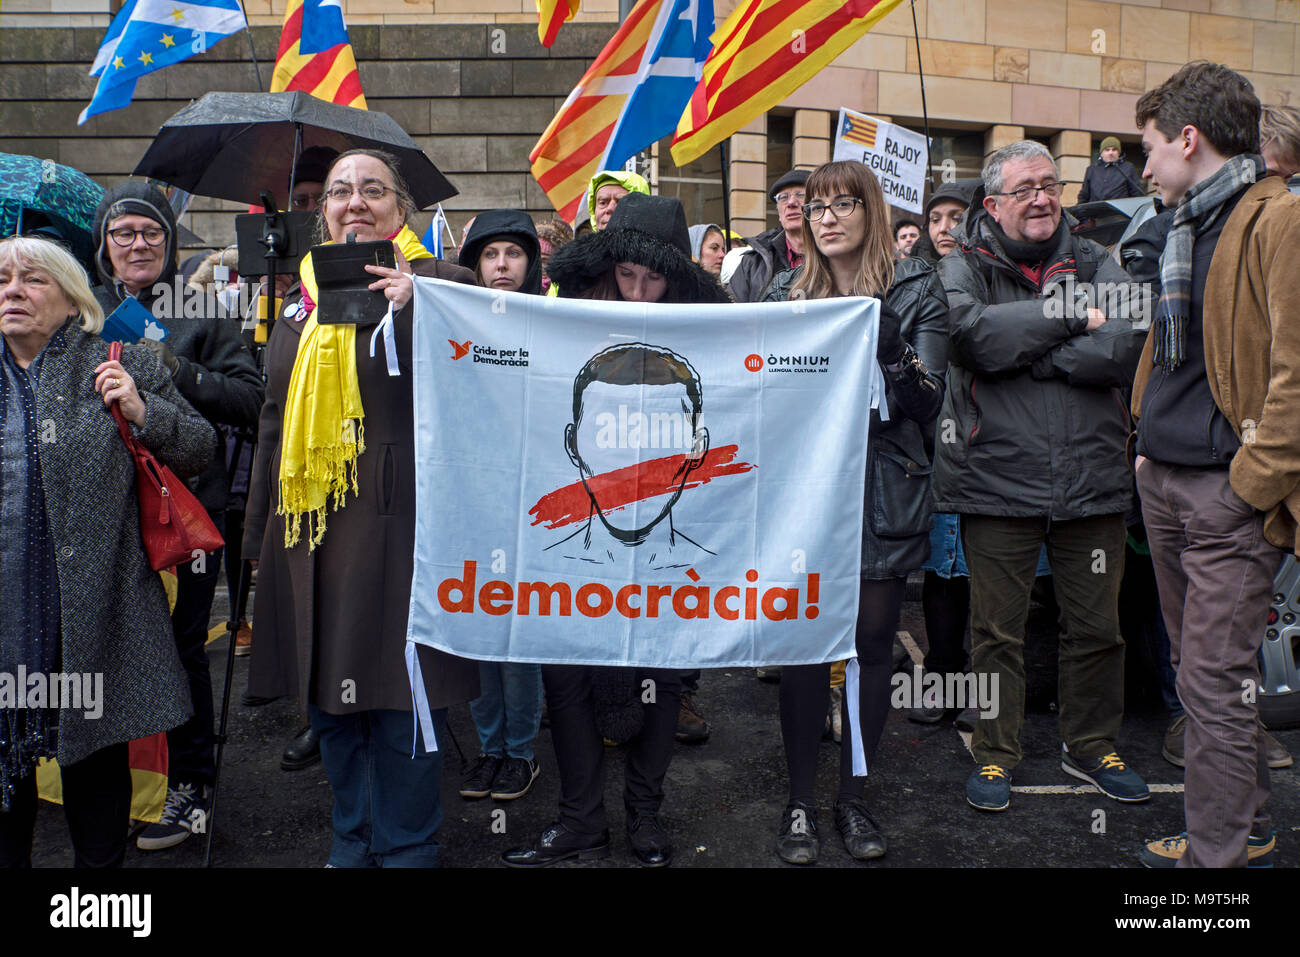 Supporters of Clara Ponsati the former Catalan education minister outside the Sheriff Court in Edinburgh, 28th March, 2018. - Stock Image